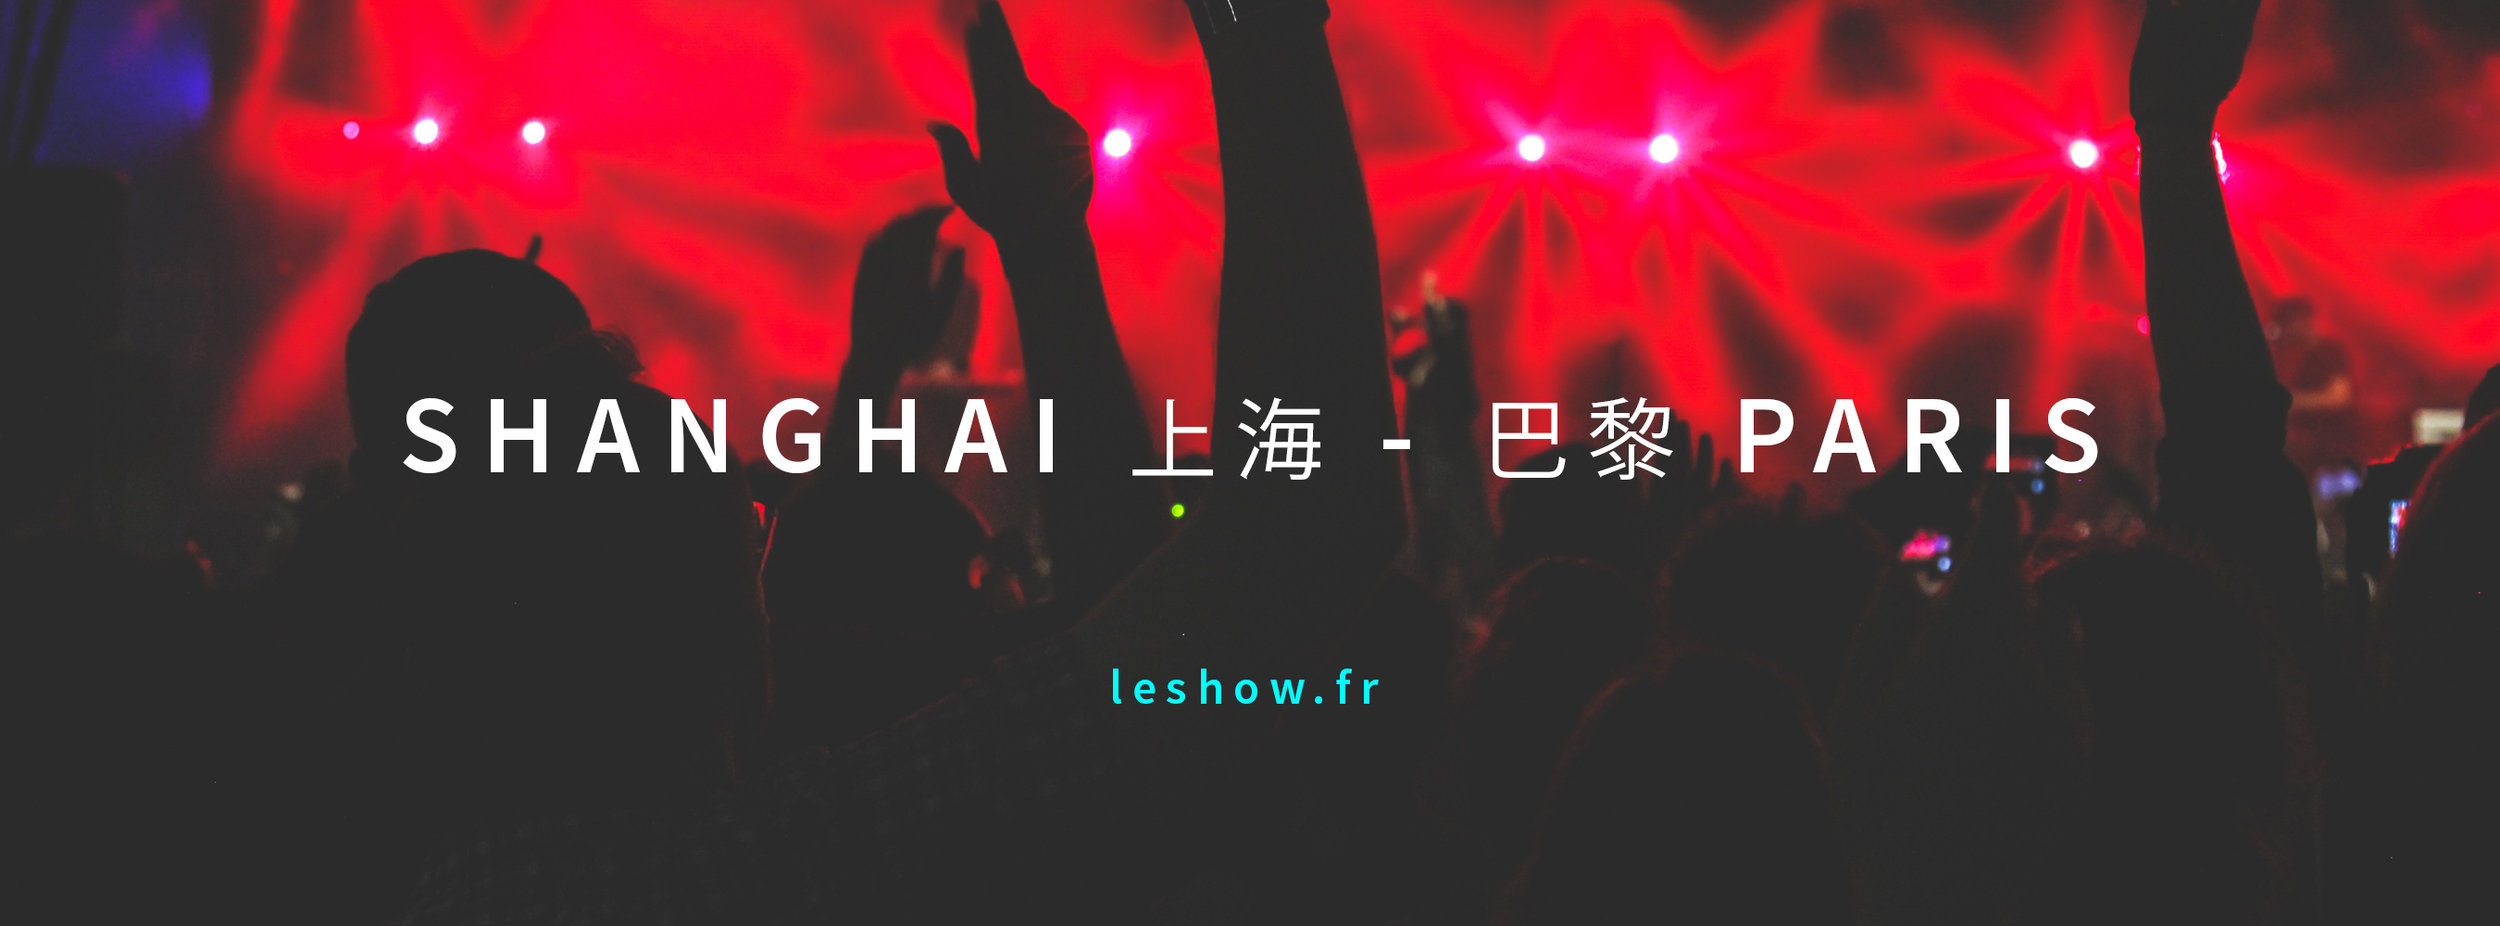 leshow-facebook-cover.png